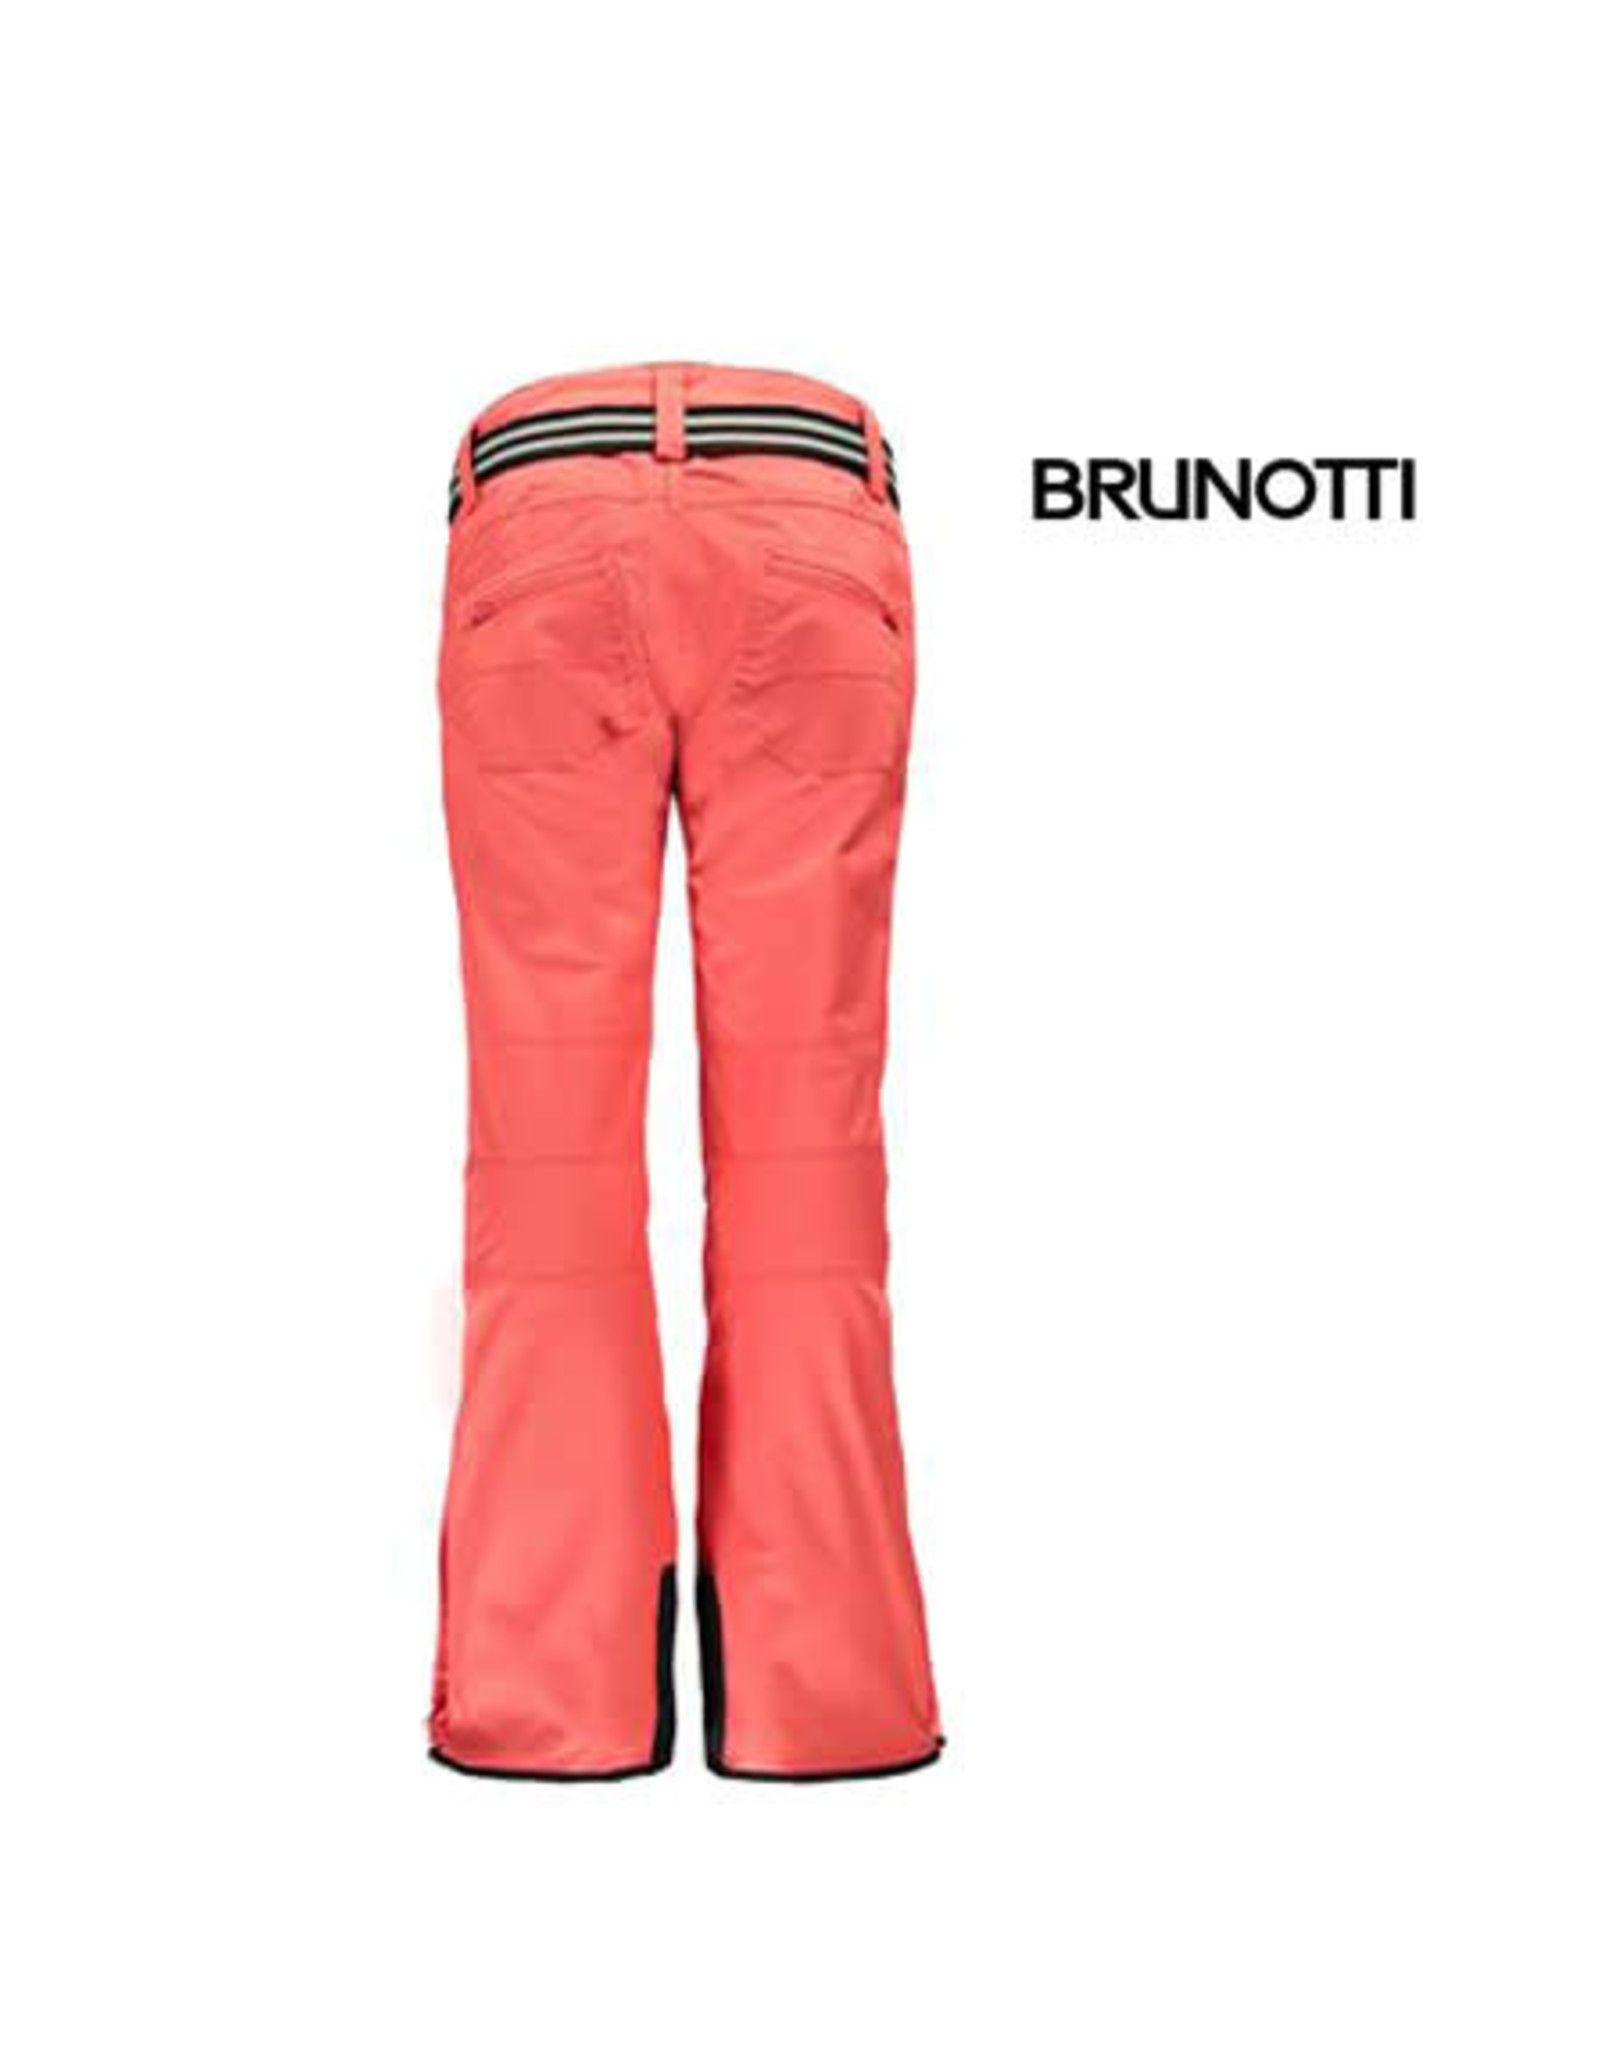 BRUNOTTI BRUNOTTI LAWN Skibroek Fushion XL